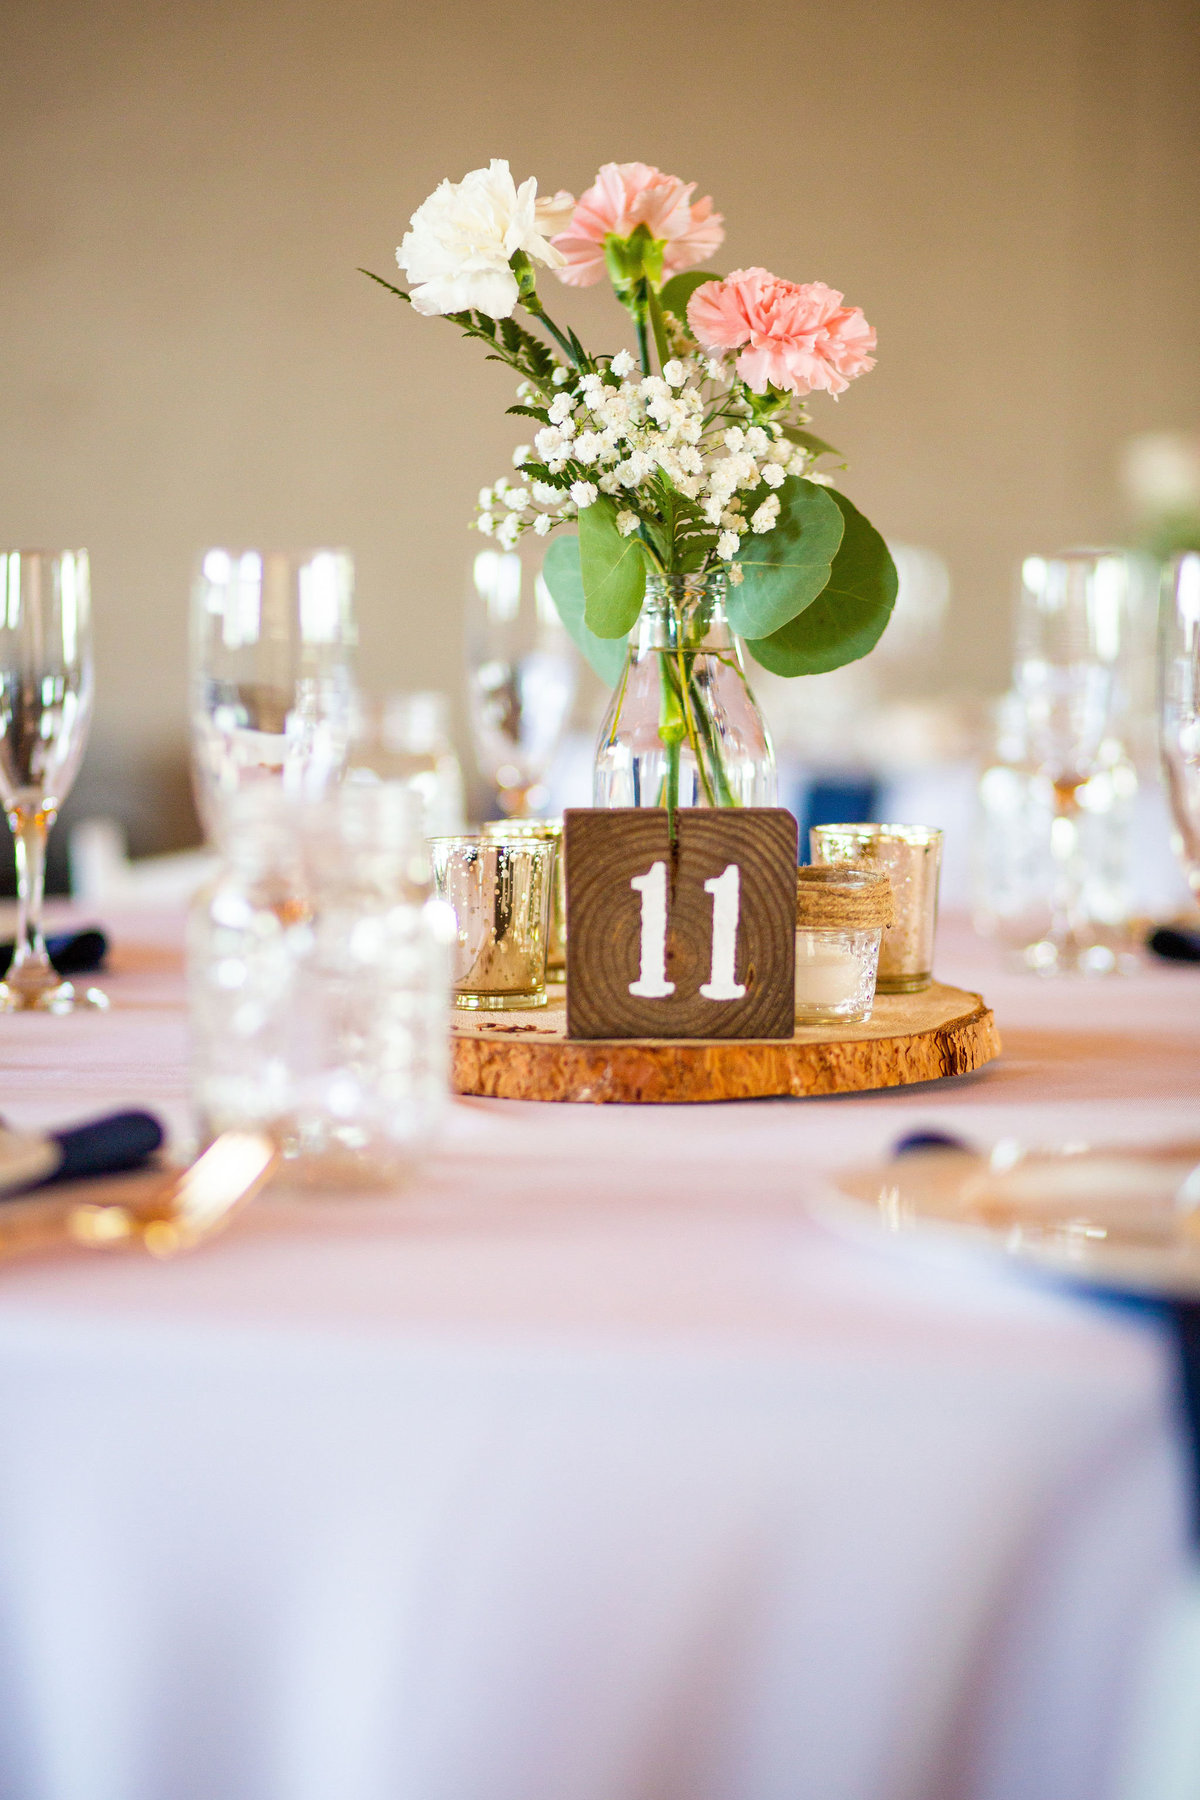 Strawberry-Creek-Ranch-Wedding-Ashley-McKenzie-Photography-Summer-love-on-the-ranch-Table-centerpieces